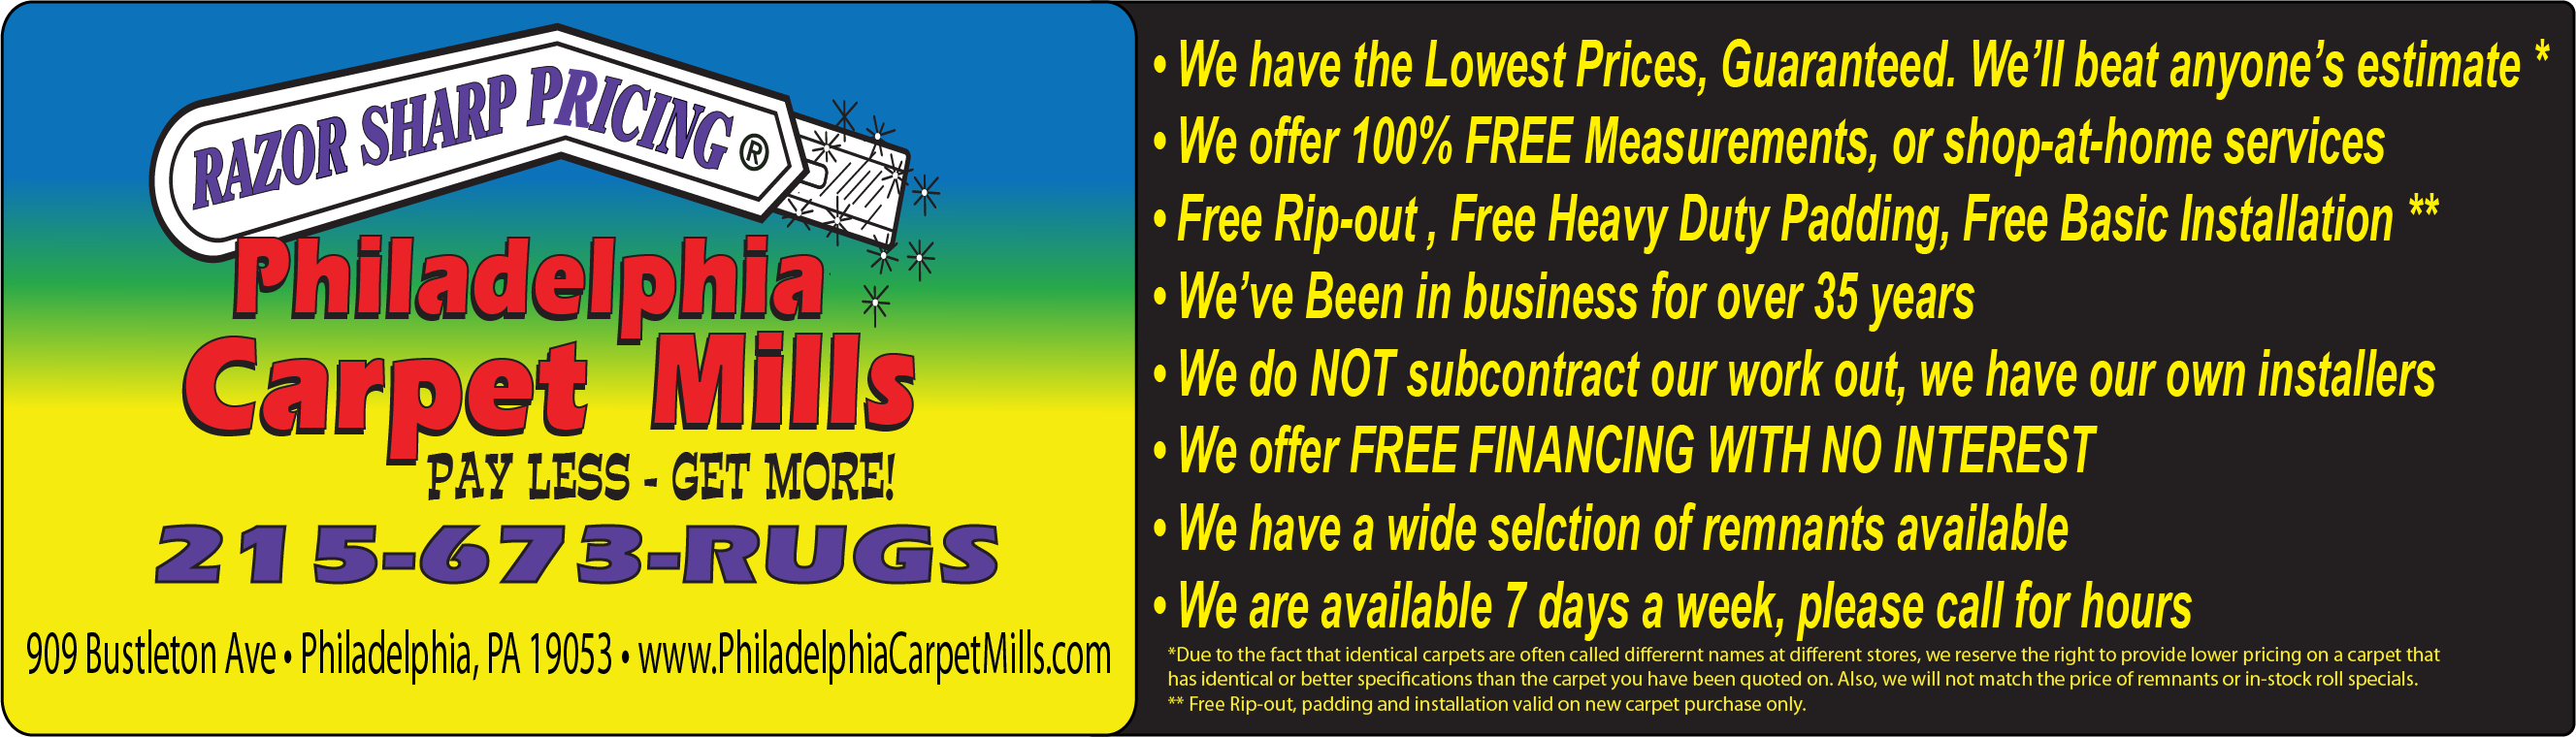 philadelphia carpet mills, carpet, vinyl, free estimates